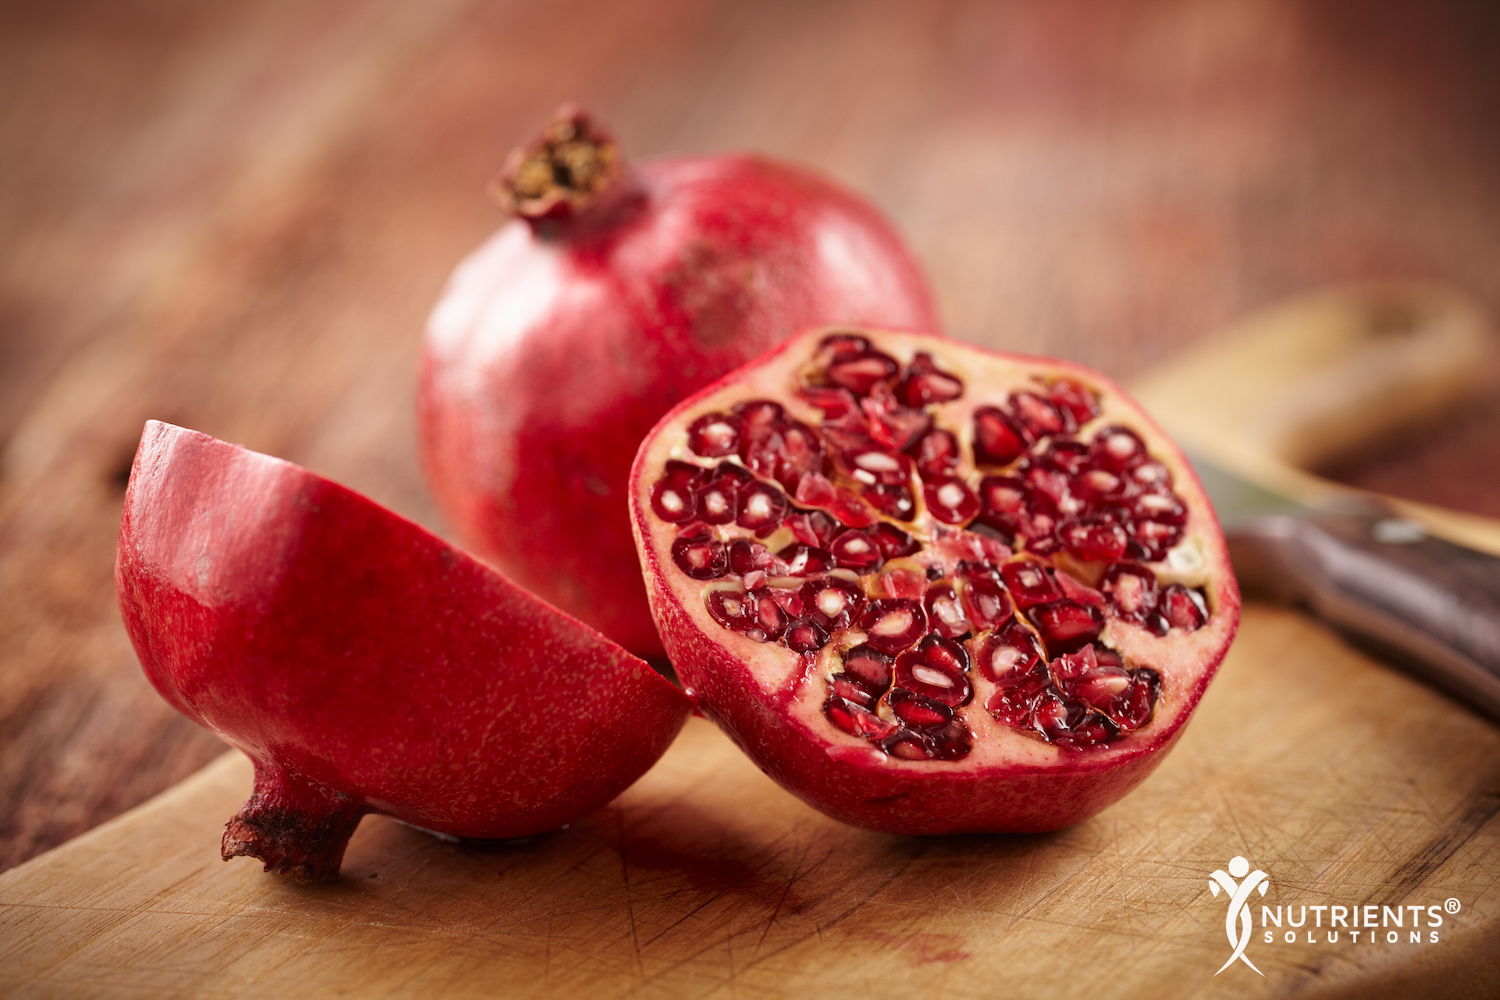 The Amazing Health Benefits of Pomegranate